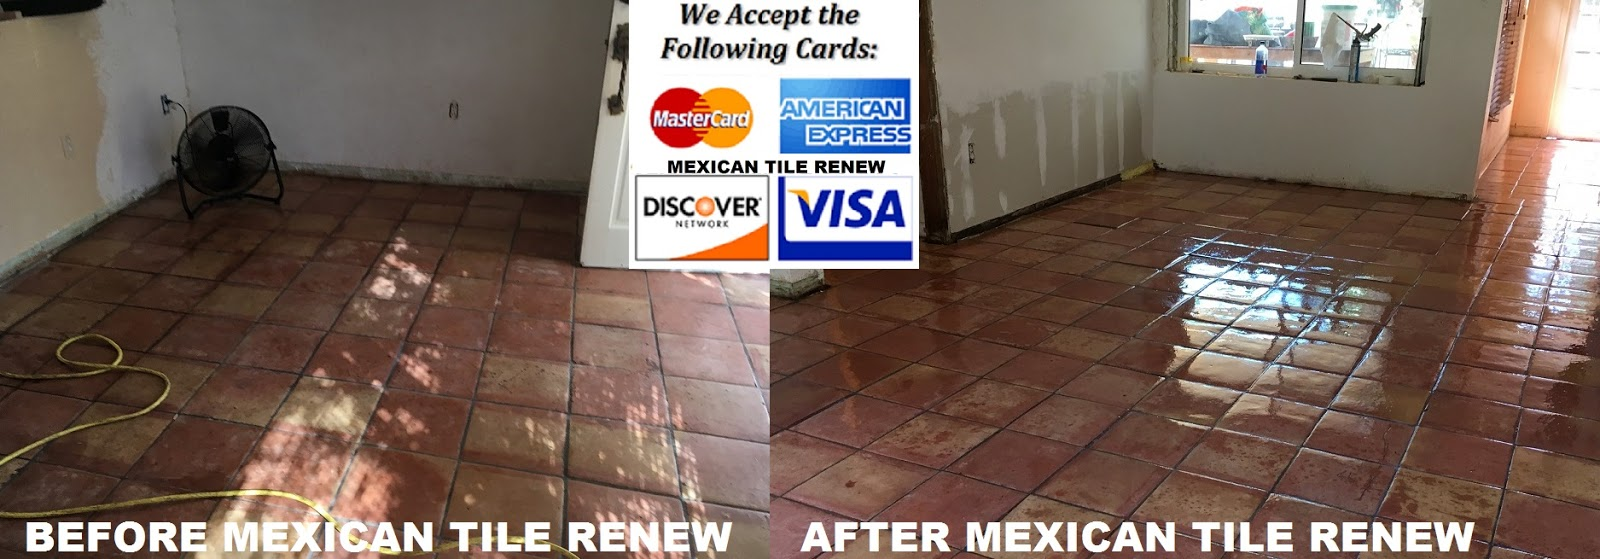 we accept all major credit cards   u2013 page 4  u2013 mexican tile